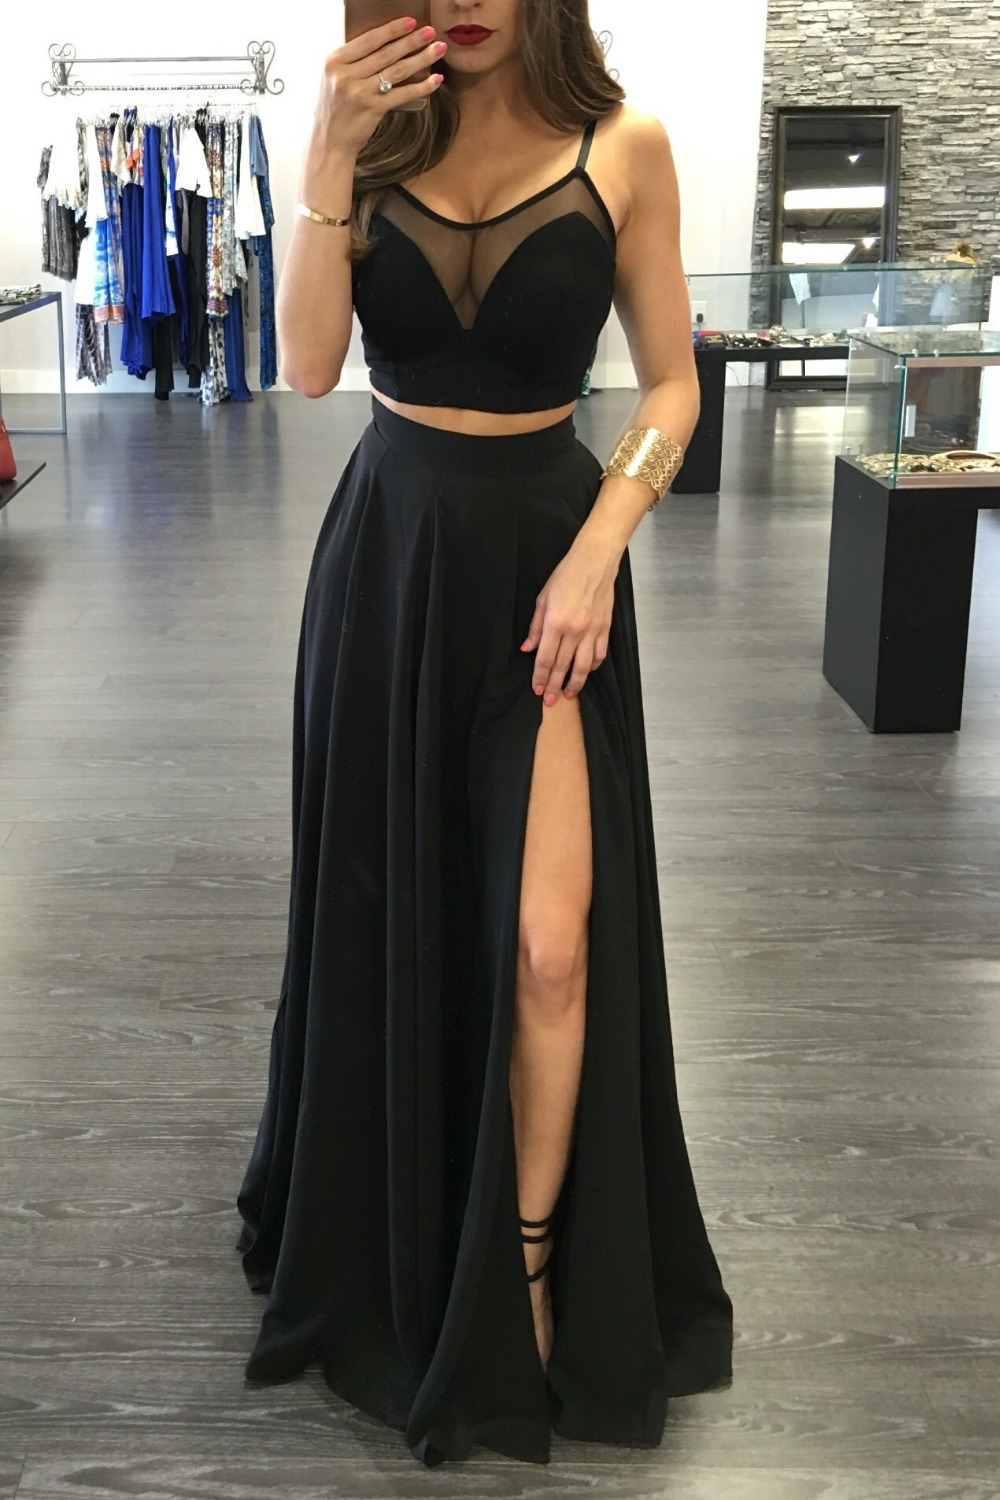 0b9db57f7e9 Black Prom Dress 2017 Prom Dresses Wedding Party Gown Formal Wear -  Thumbnail 1 ...